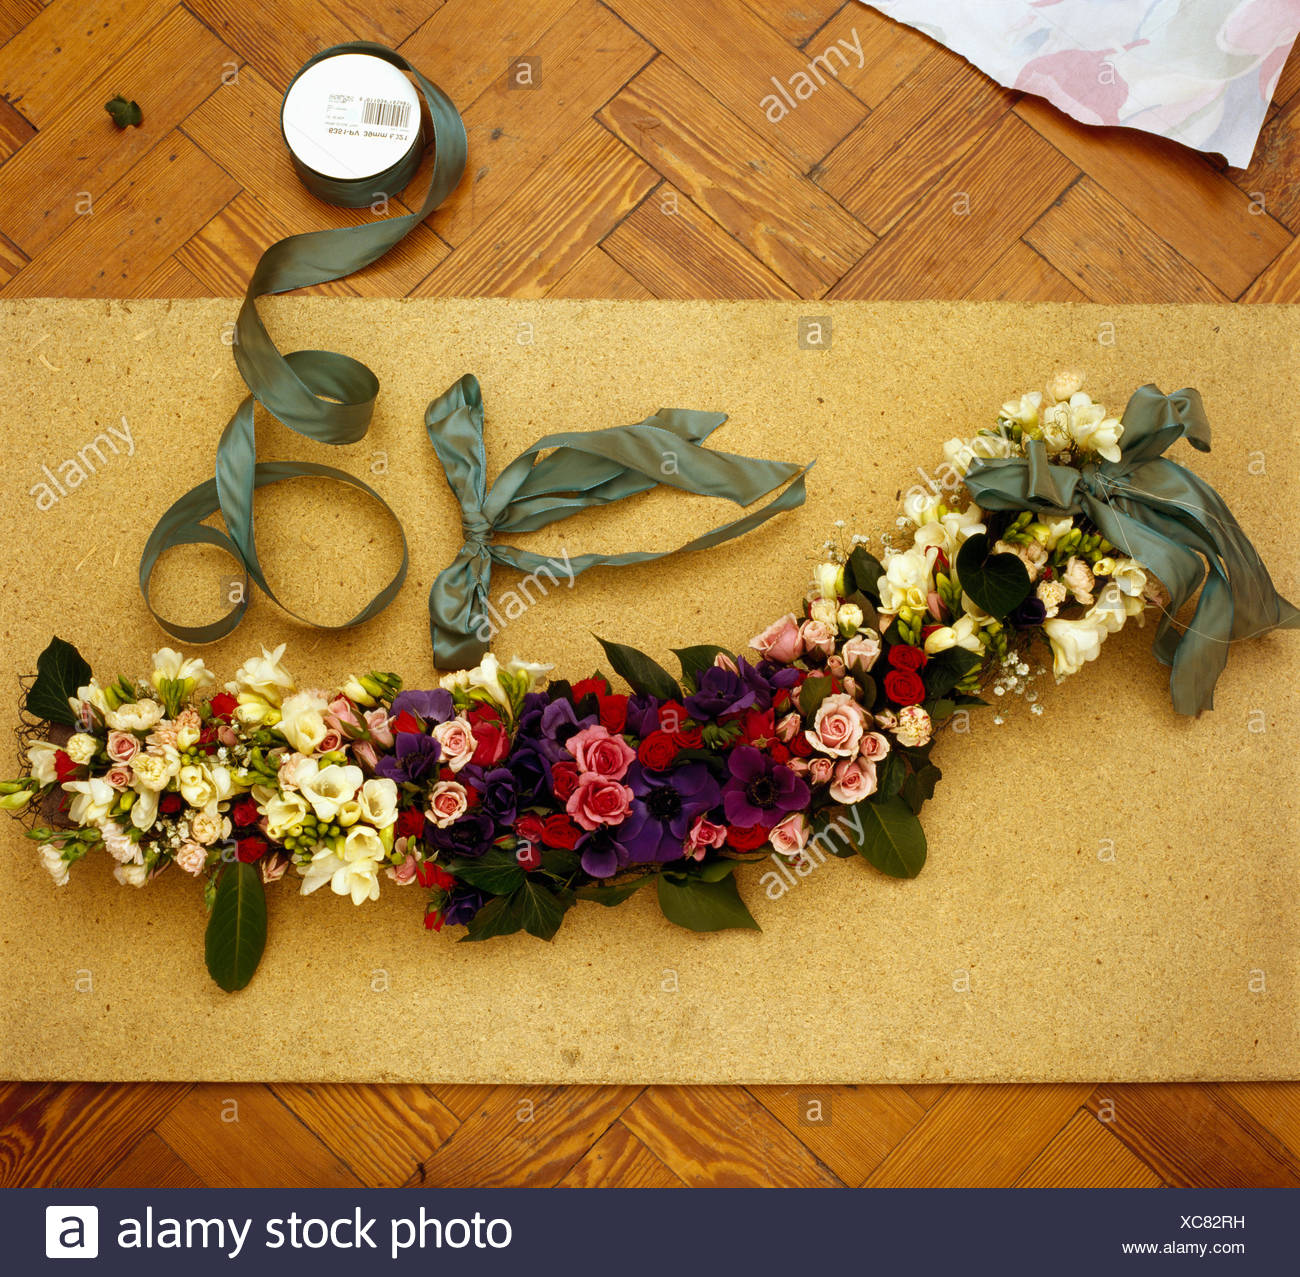 Making A Fresh Flower Garland Stock Photo 282919605 Alamy